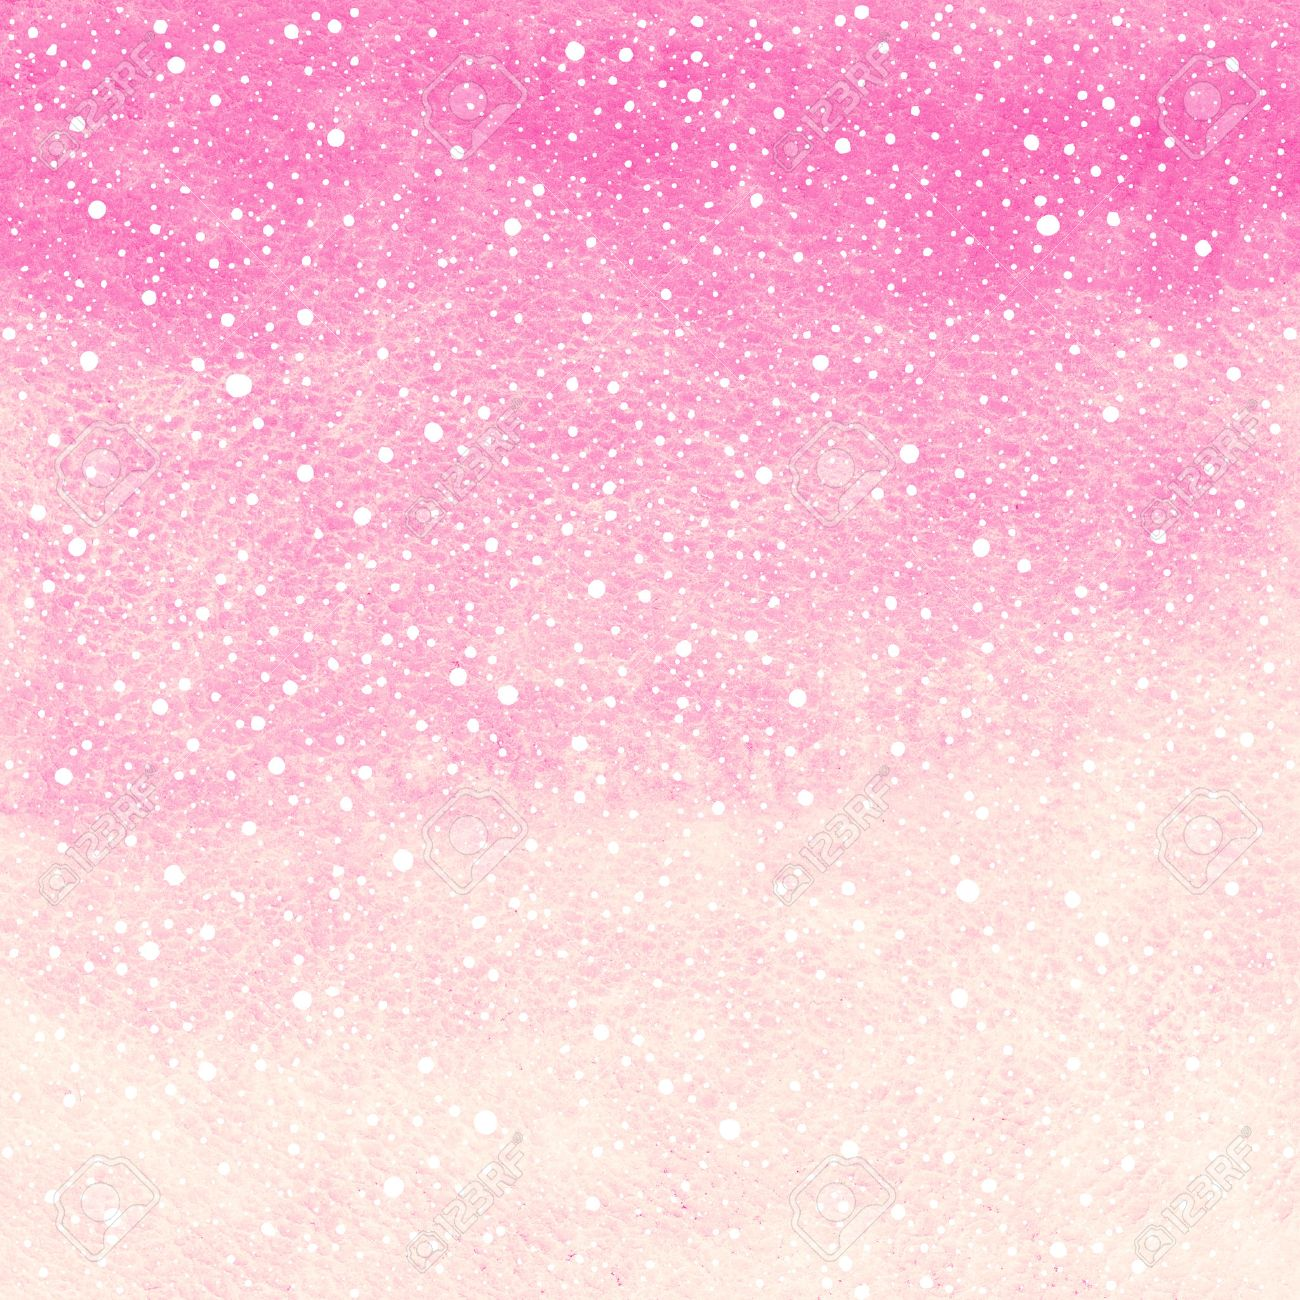 soft pink winter watercolor abstract background with falling stock